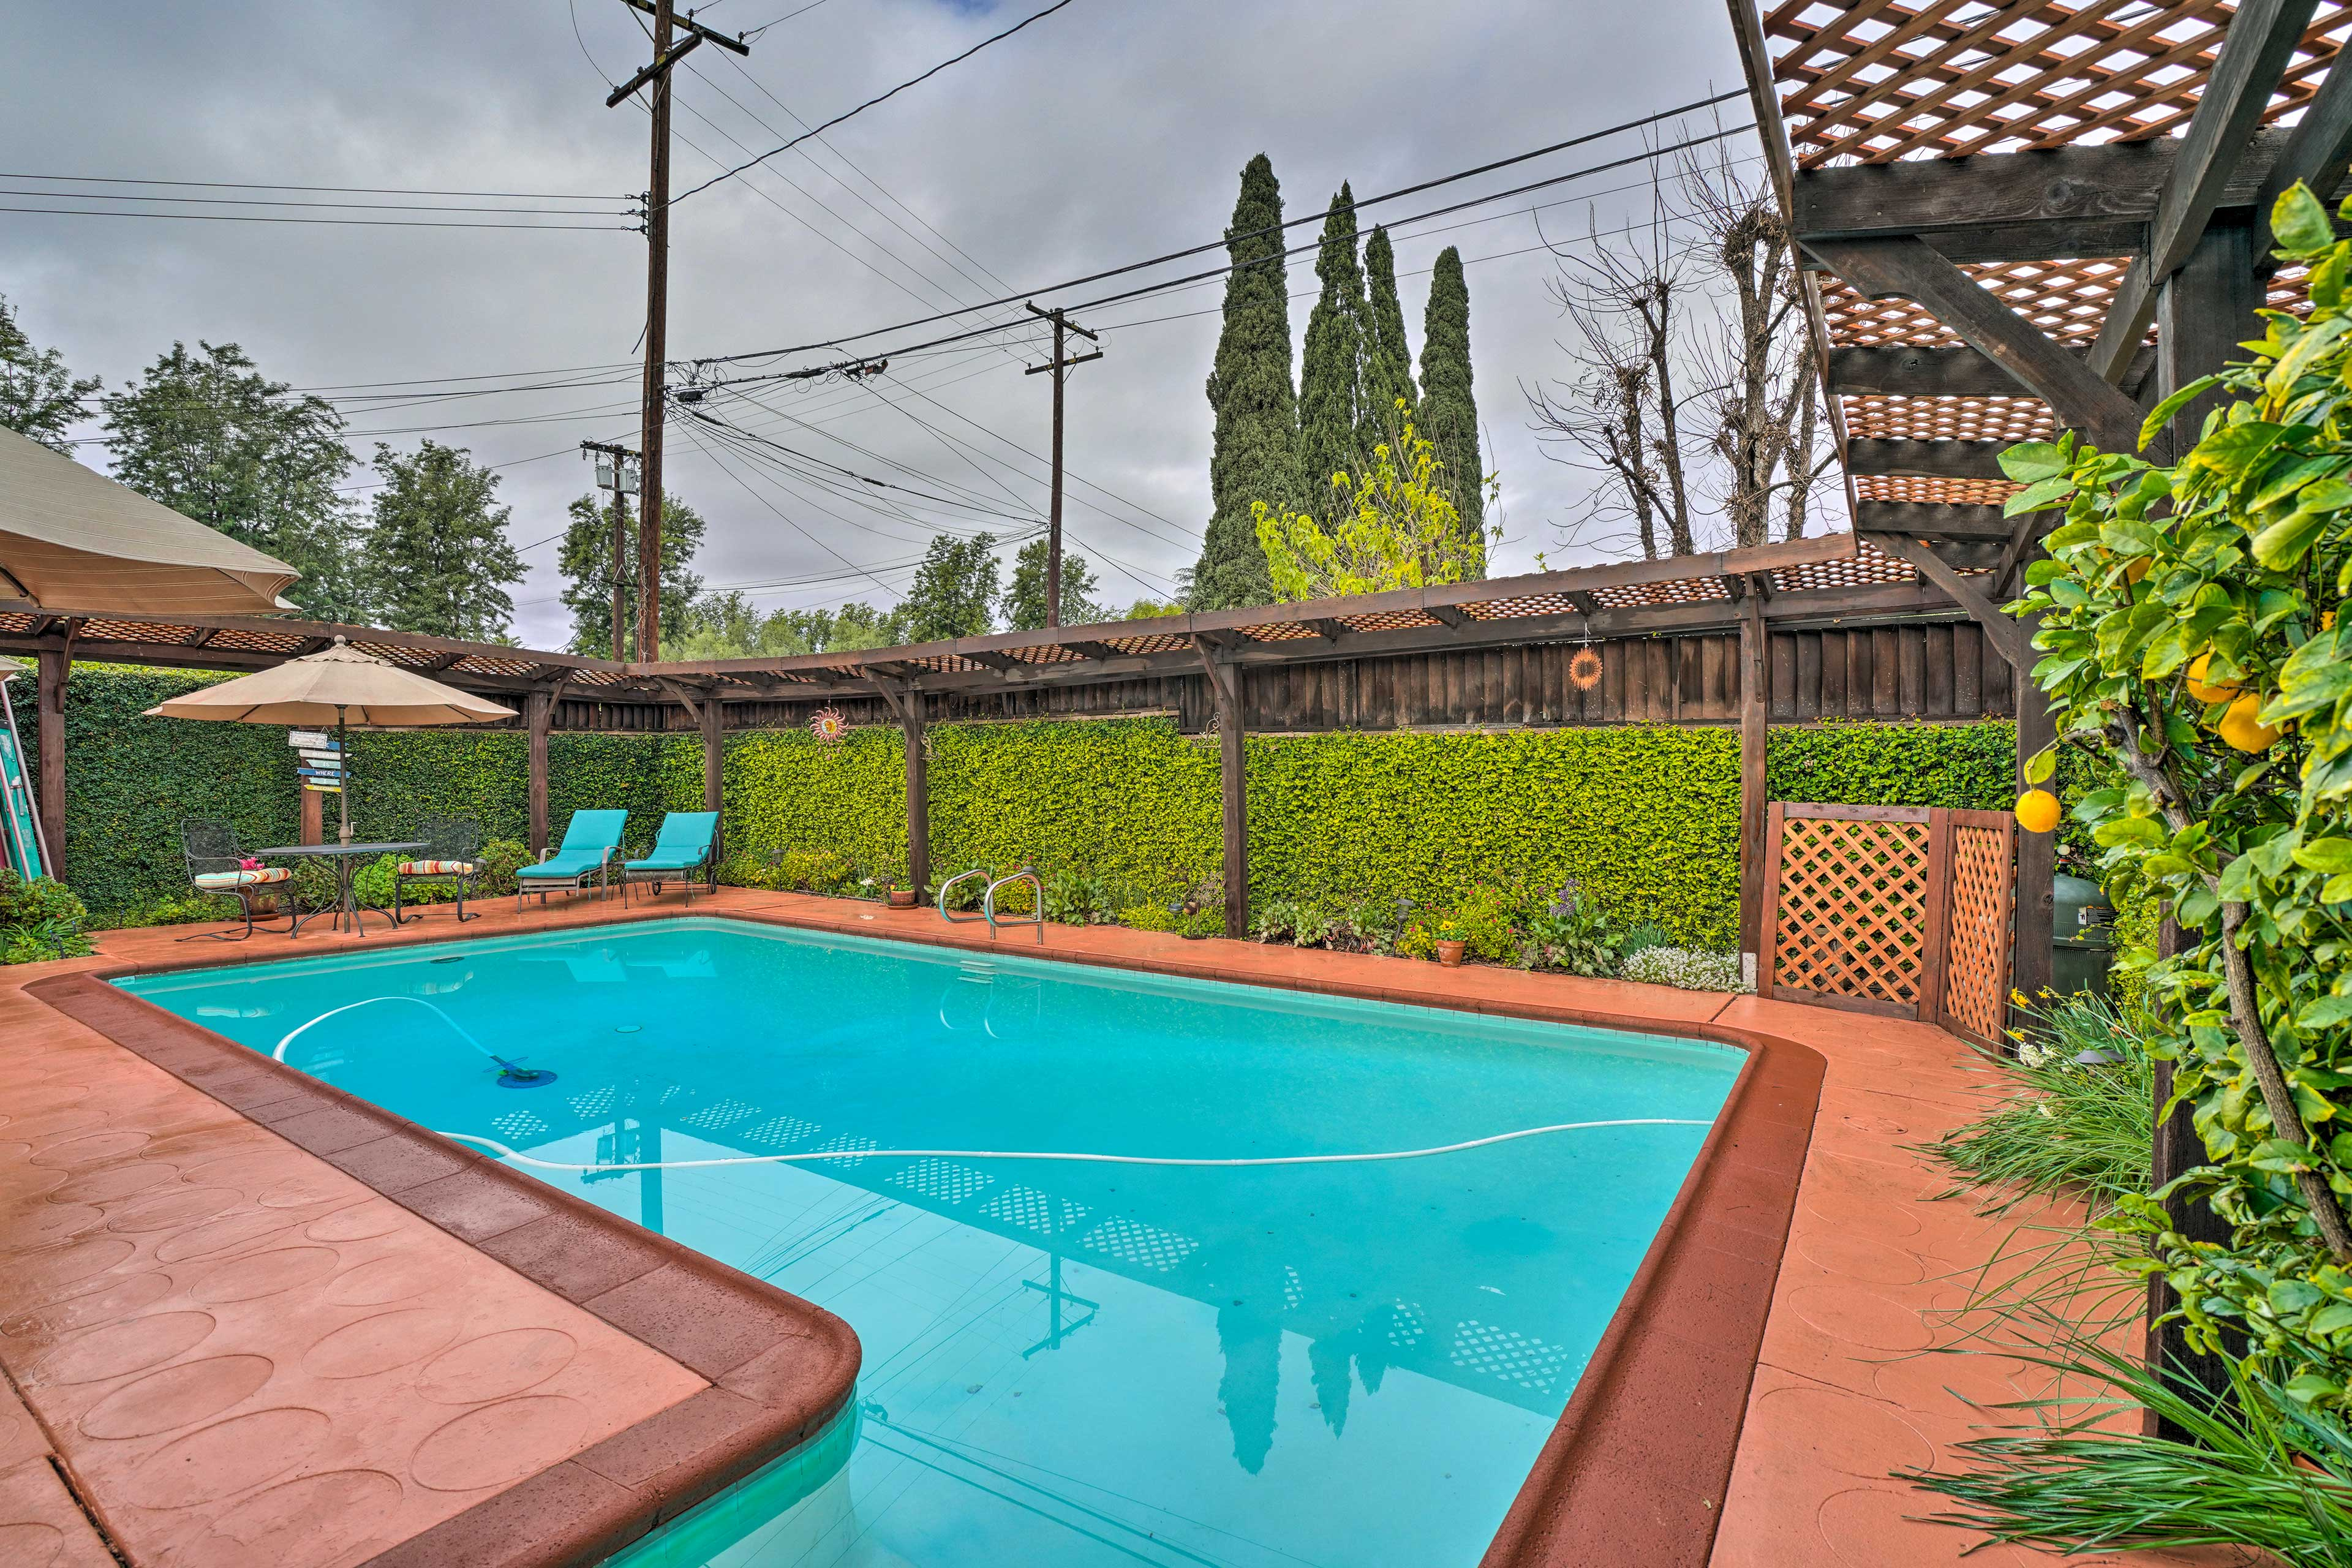 The fenced-in area offers plenty of privacy.